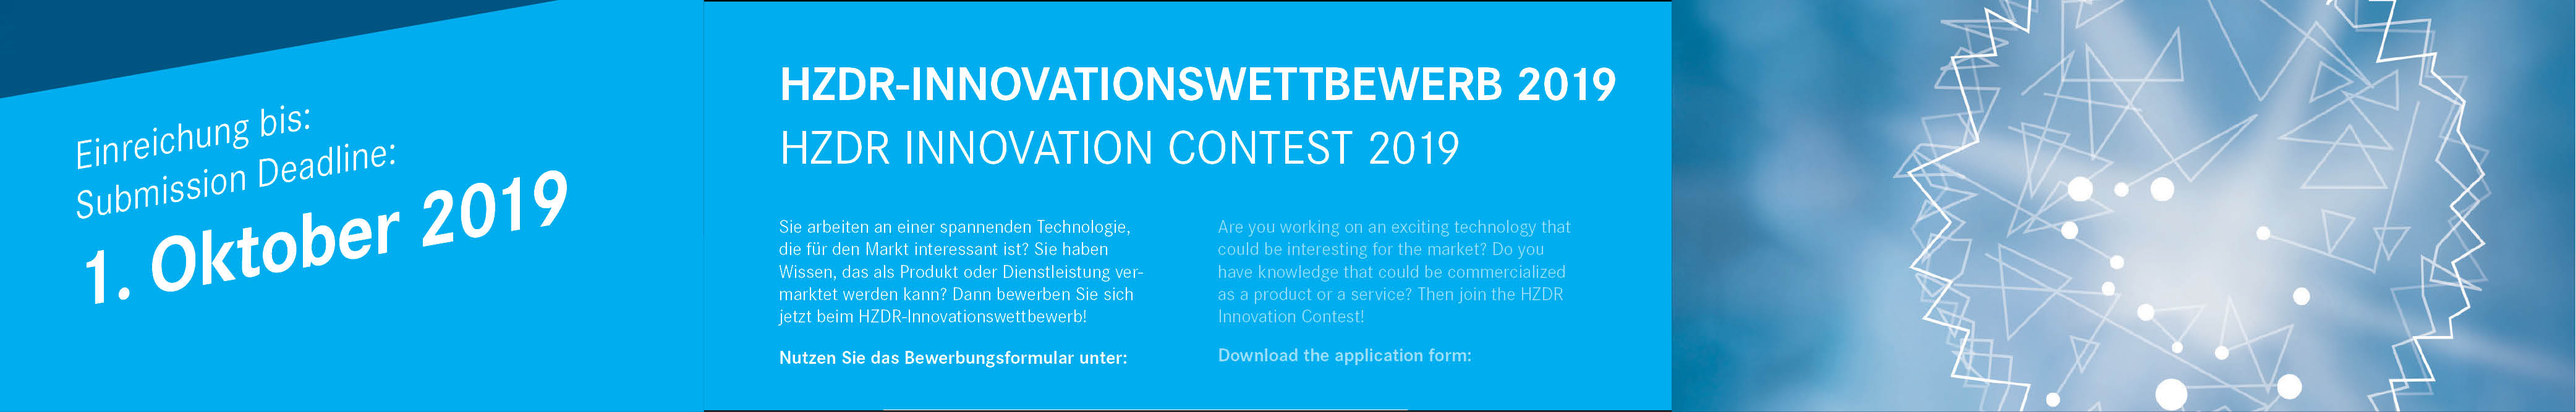 Web banner HZDR Innovation Contest 2019 ©Copyright: HZDR